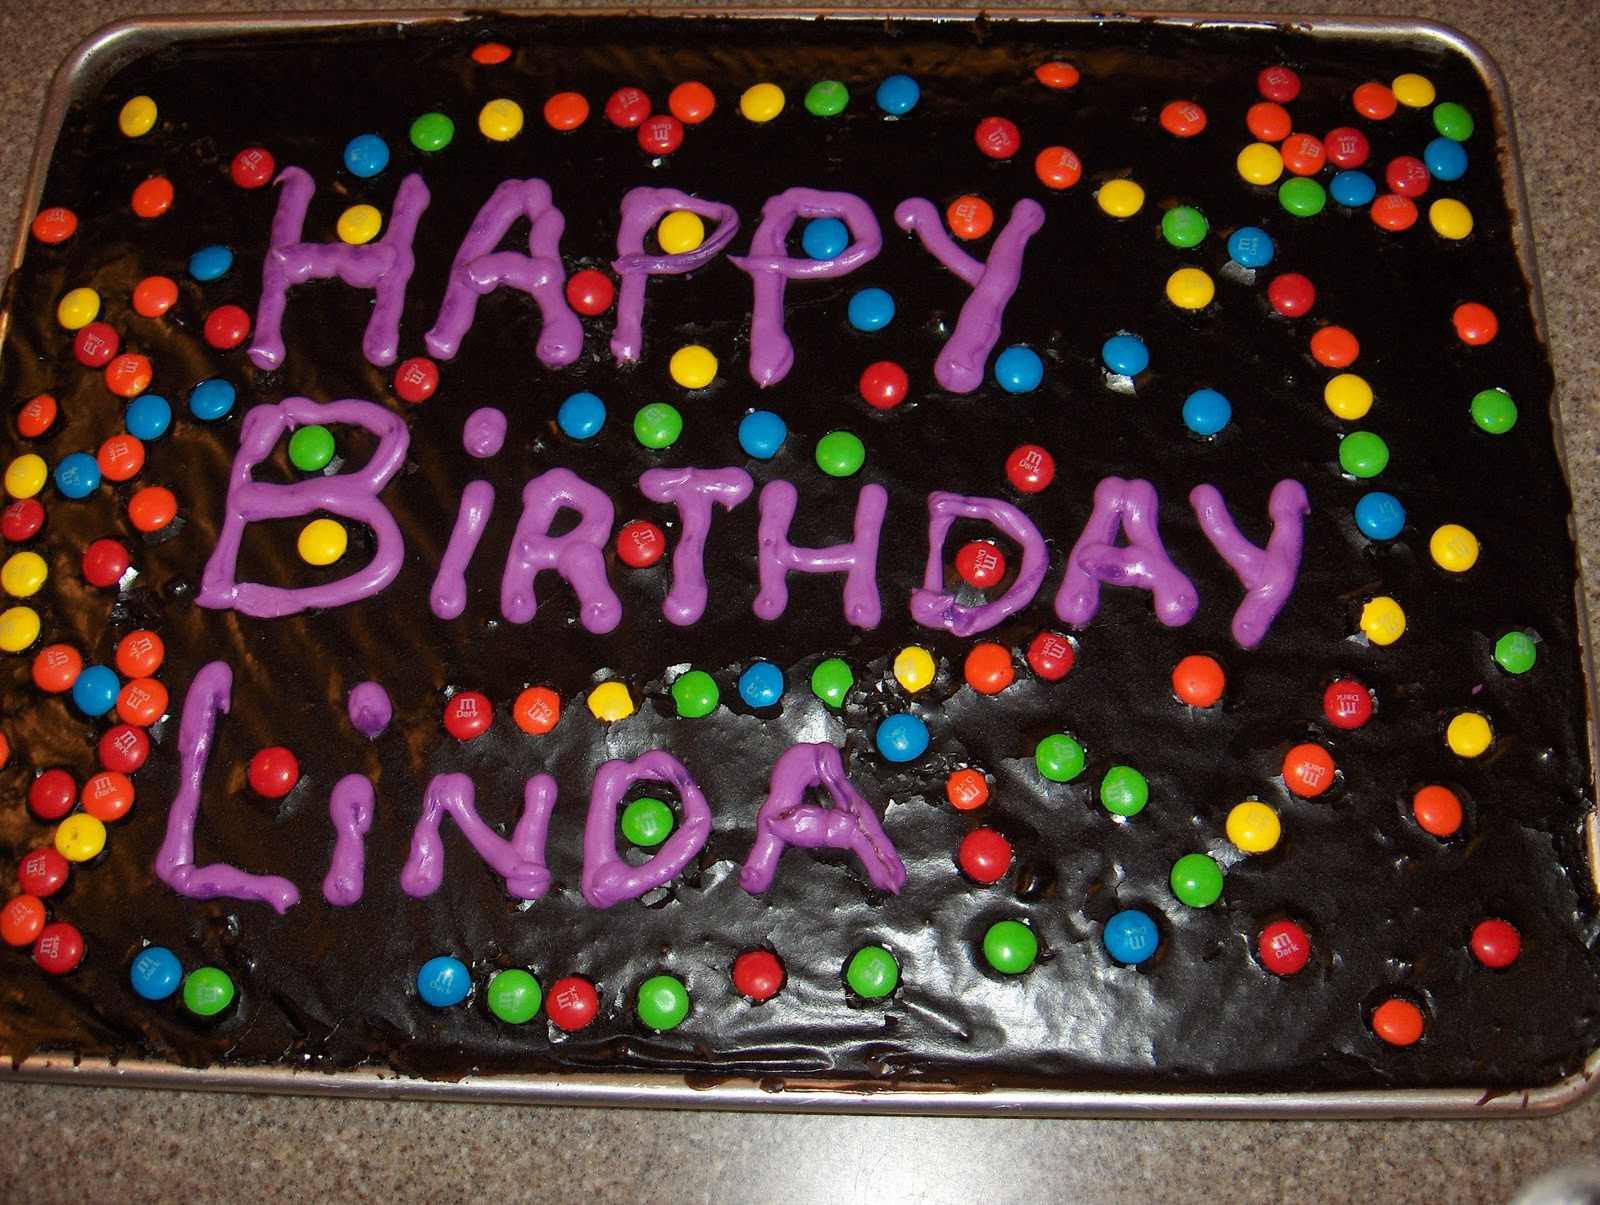 Best ideas about Happy Birthday Linda Cake . Save or Pin To Behold the Beauty ce Upon a Birthday Now.